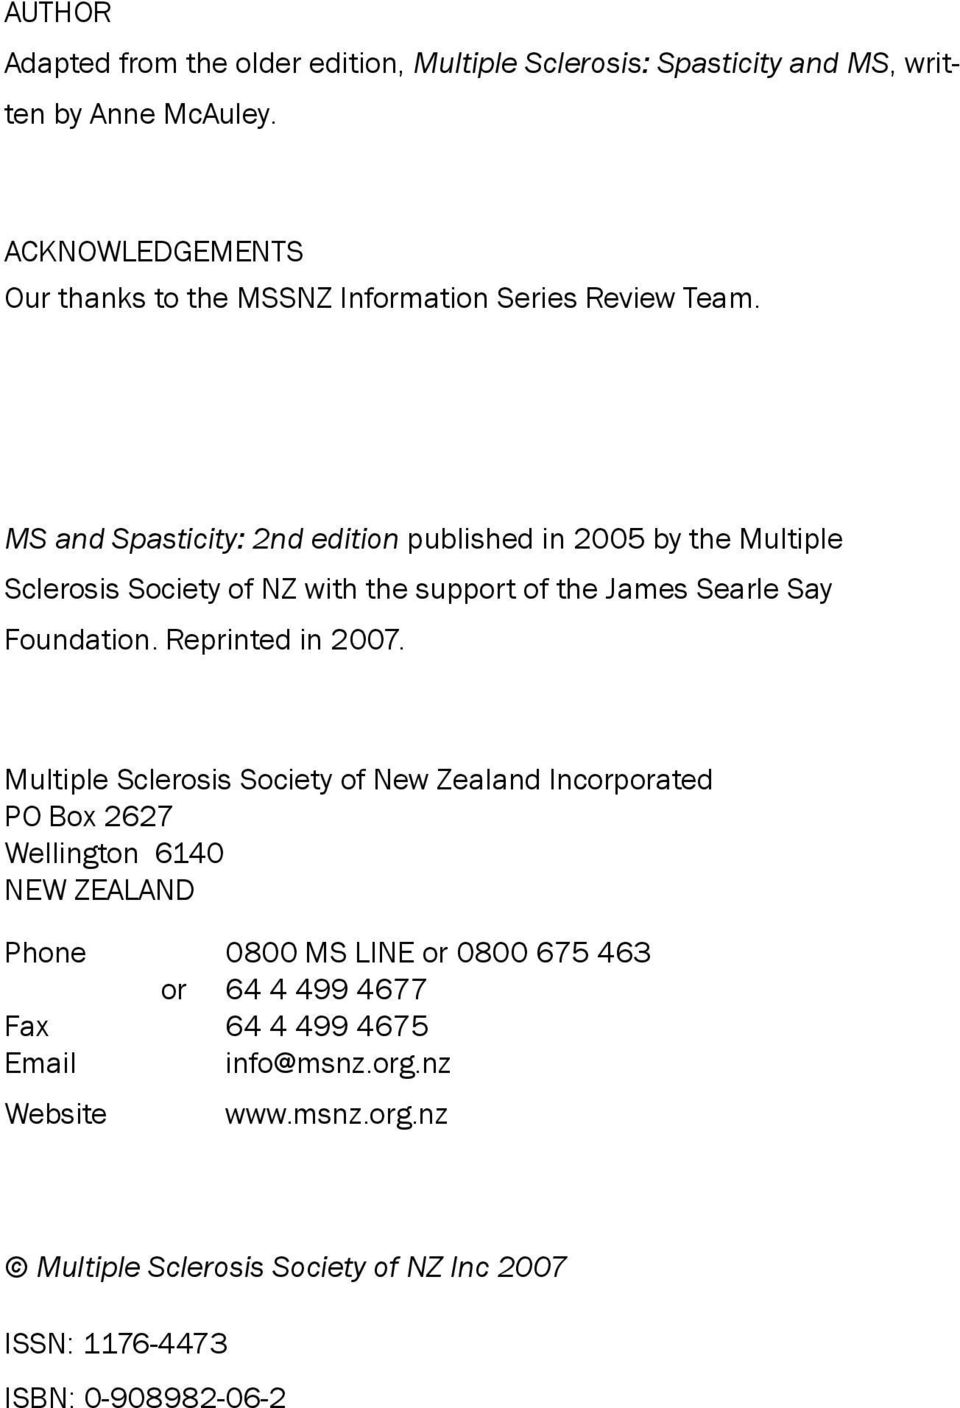 MS and Spasticity: 2nd edition published in 2005 by the Multiple Sclerosis Society of NZ with the support of the James Searle Say Foundation.